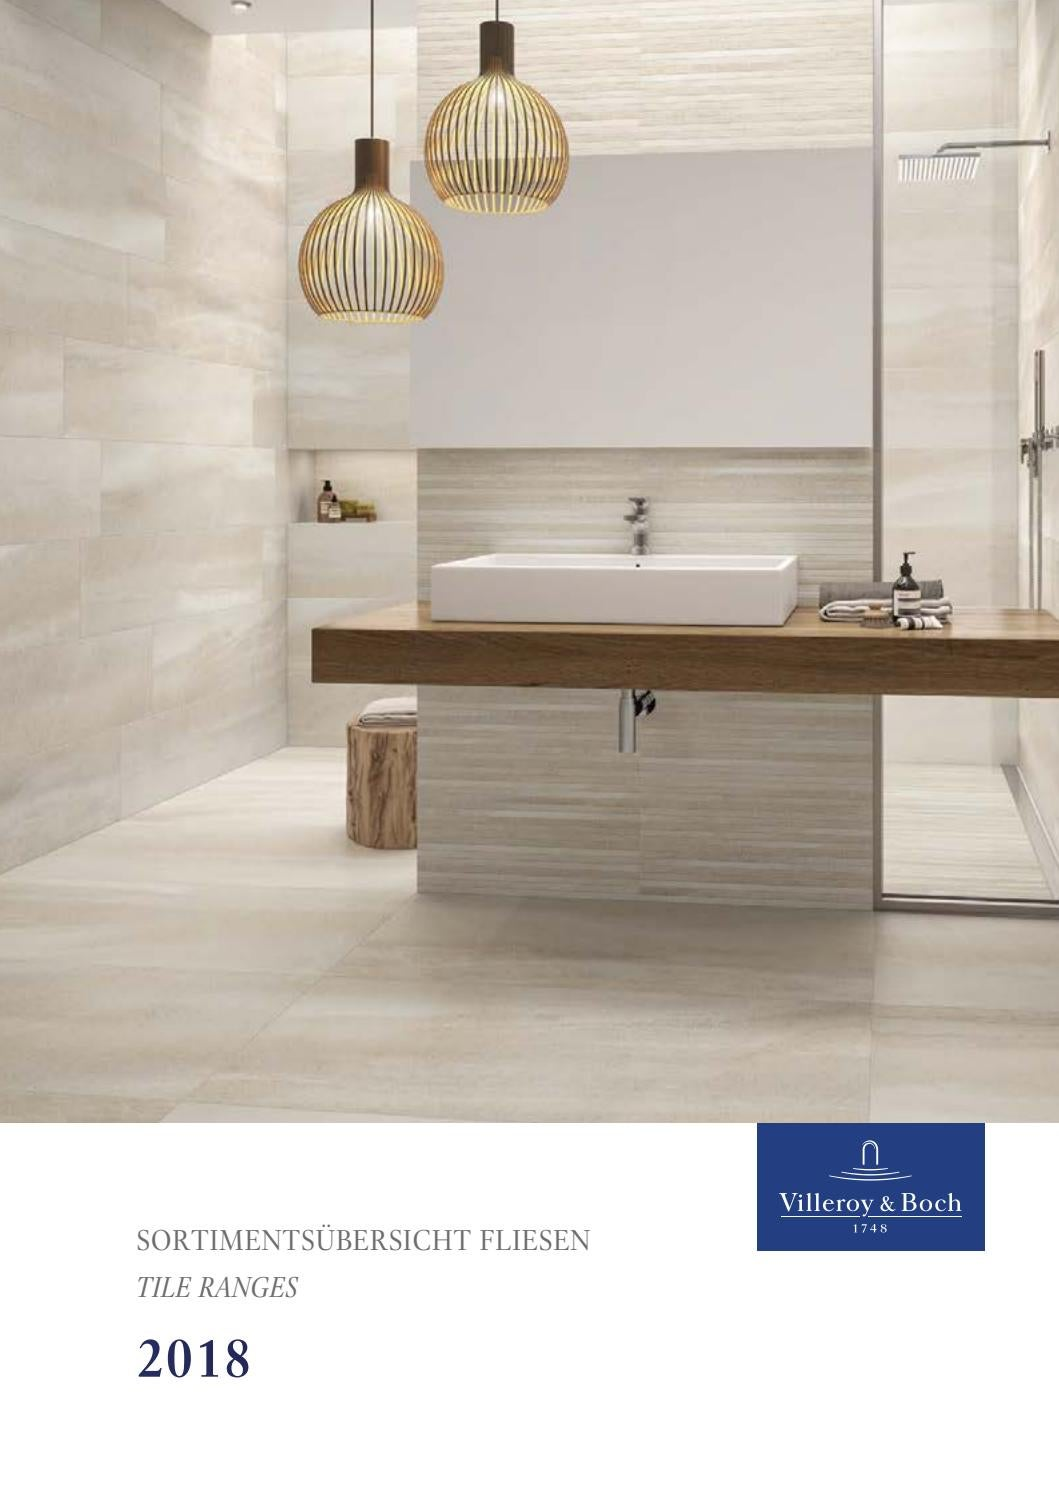 Villeroy and Boch Tiles 20 by IRIS   issuu